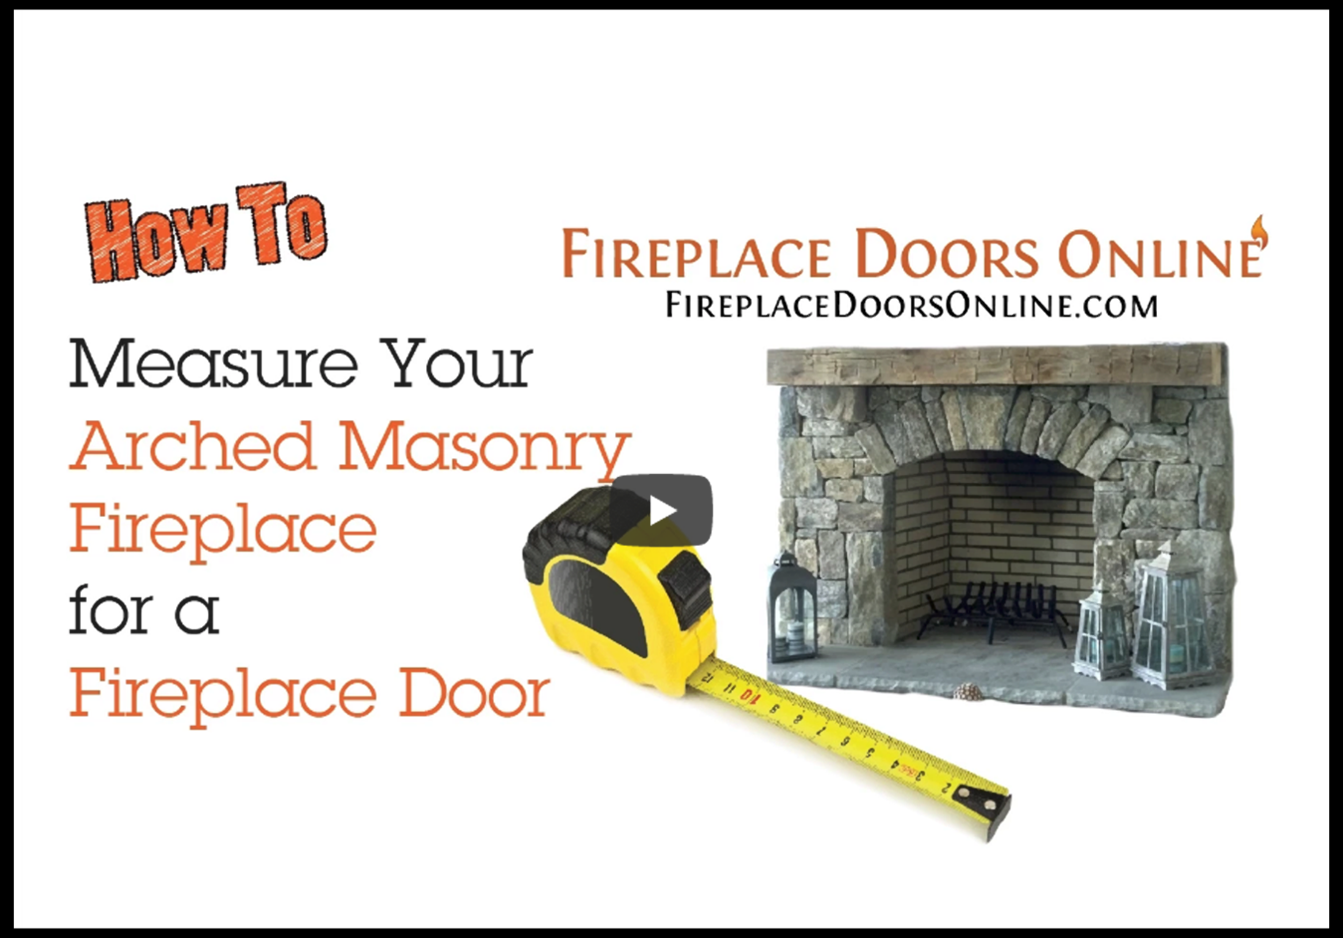 Learn how to measure your arched fireplace opening for your fireplace door